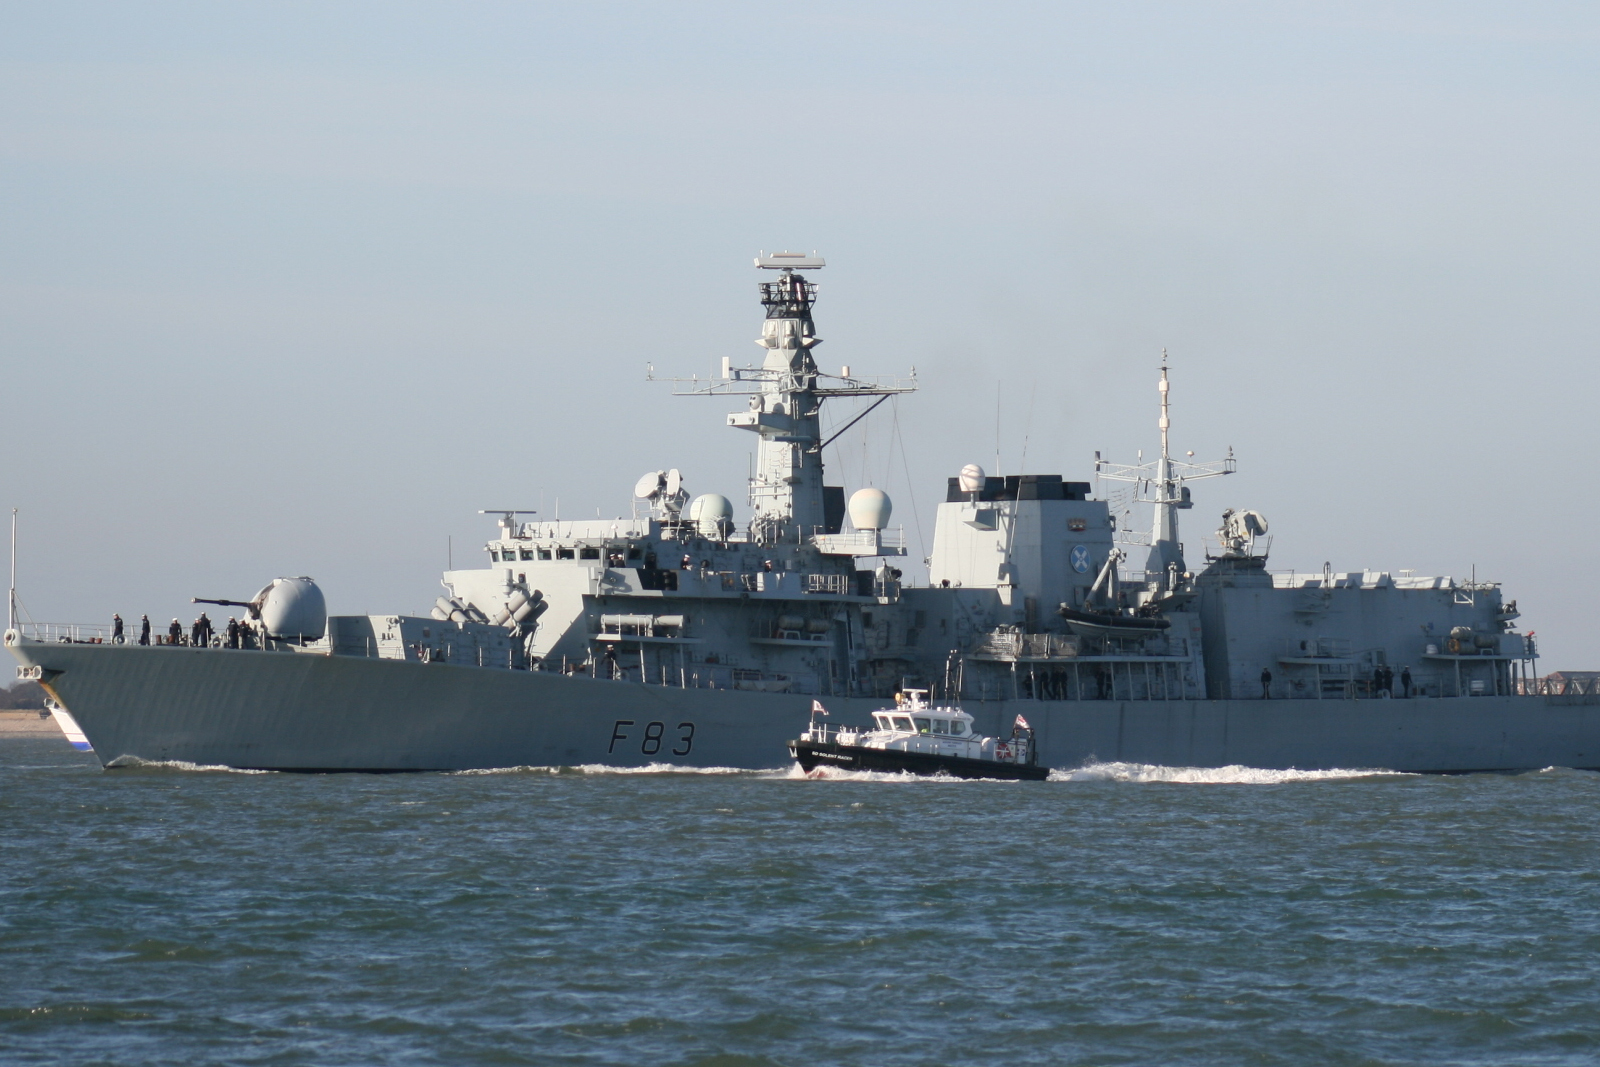 HMS St Albans honours Arctic heroes 70 years on